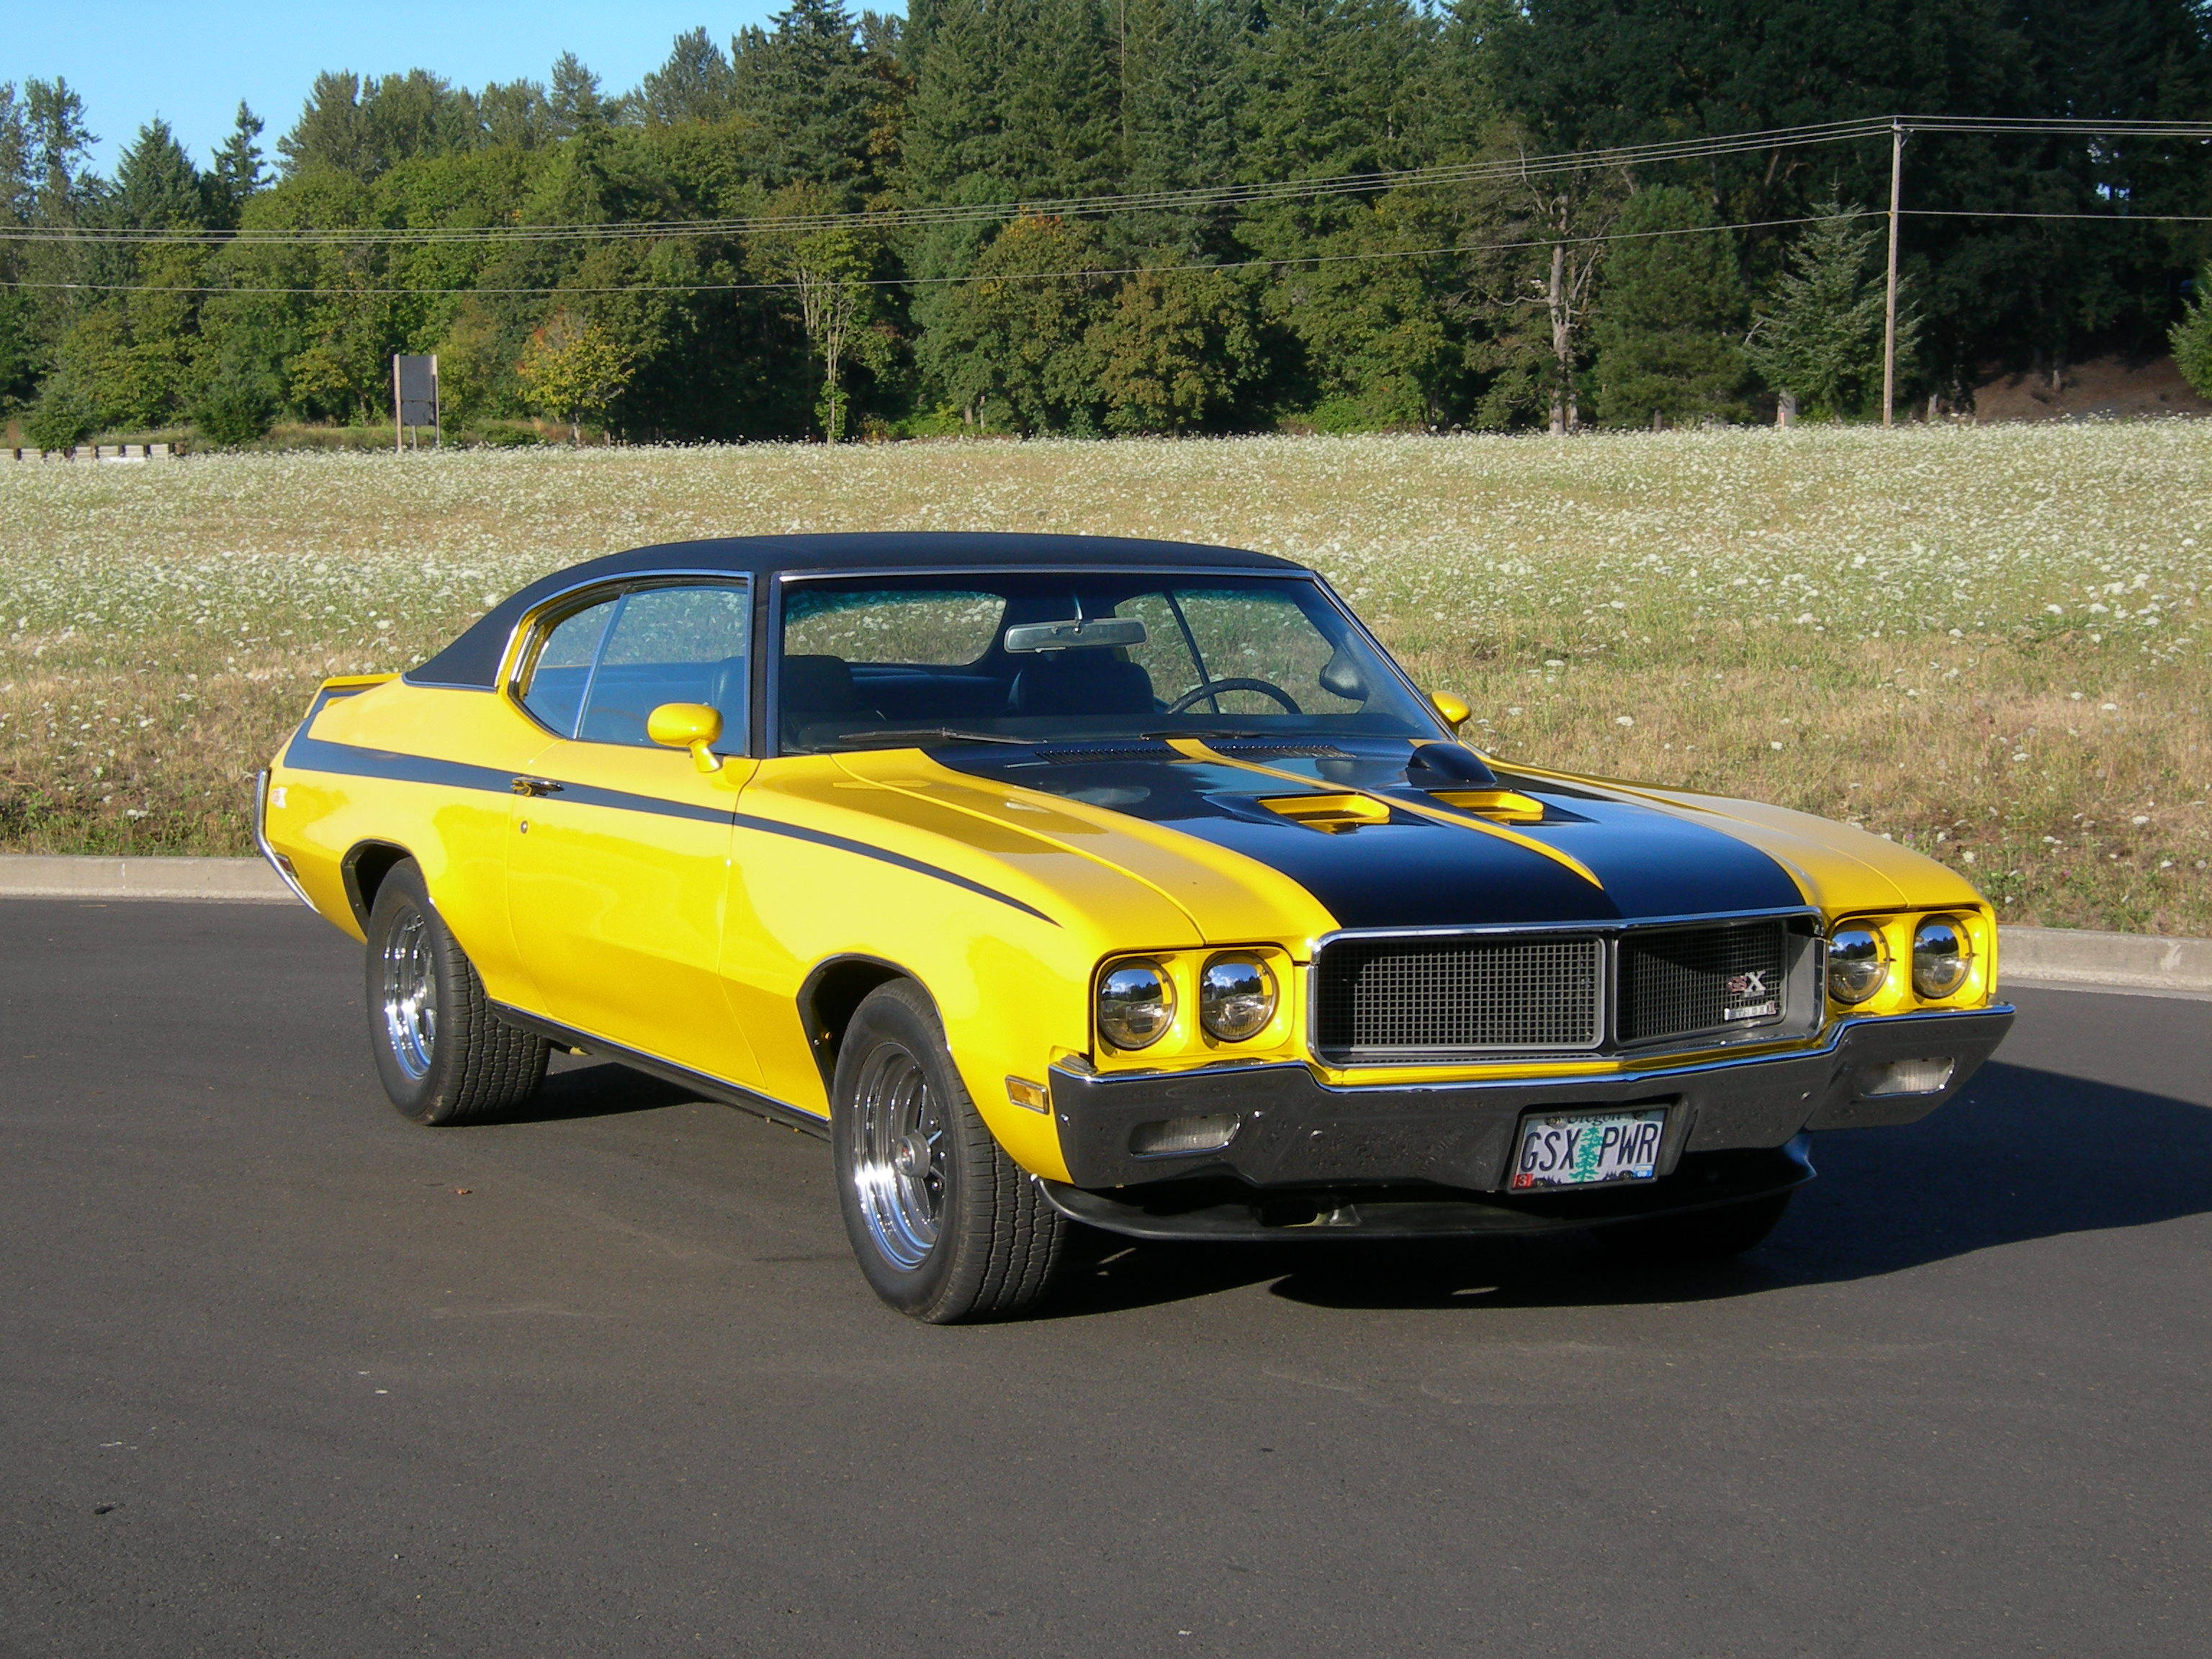 1970 Buick GS 455 &amp- GS 455 Stage 1 - Hemmings Motor News